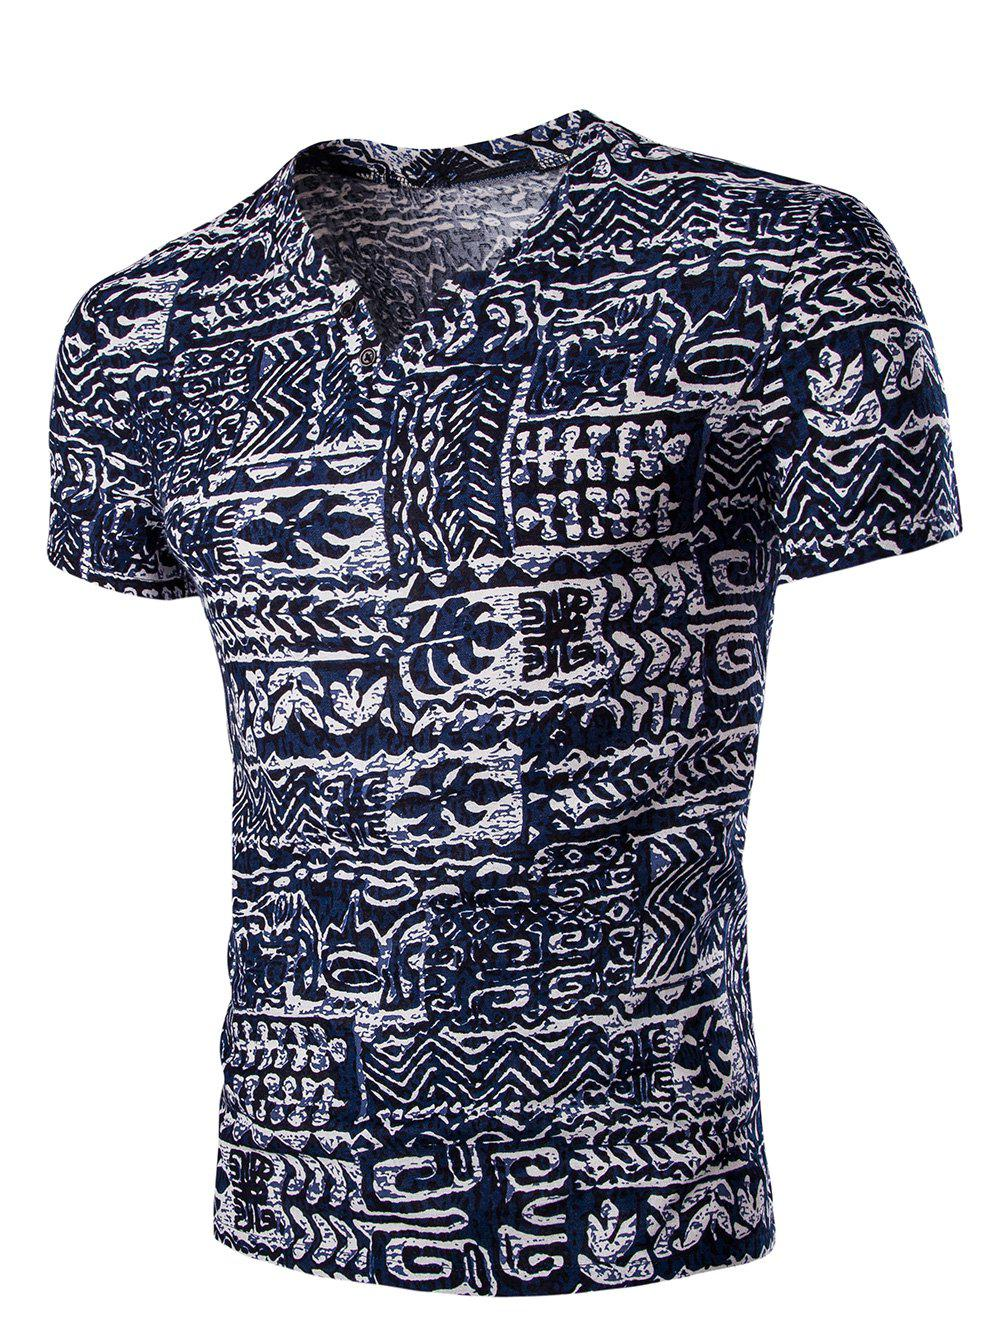 Men's Casual V Neck Abstract Printing Short Sleeves T-Shirt - COLORMIX M